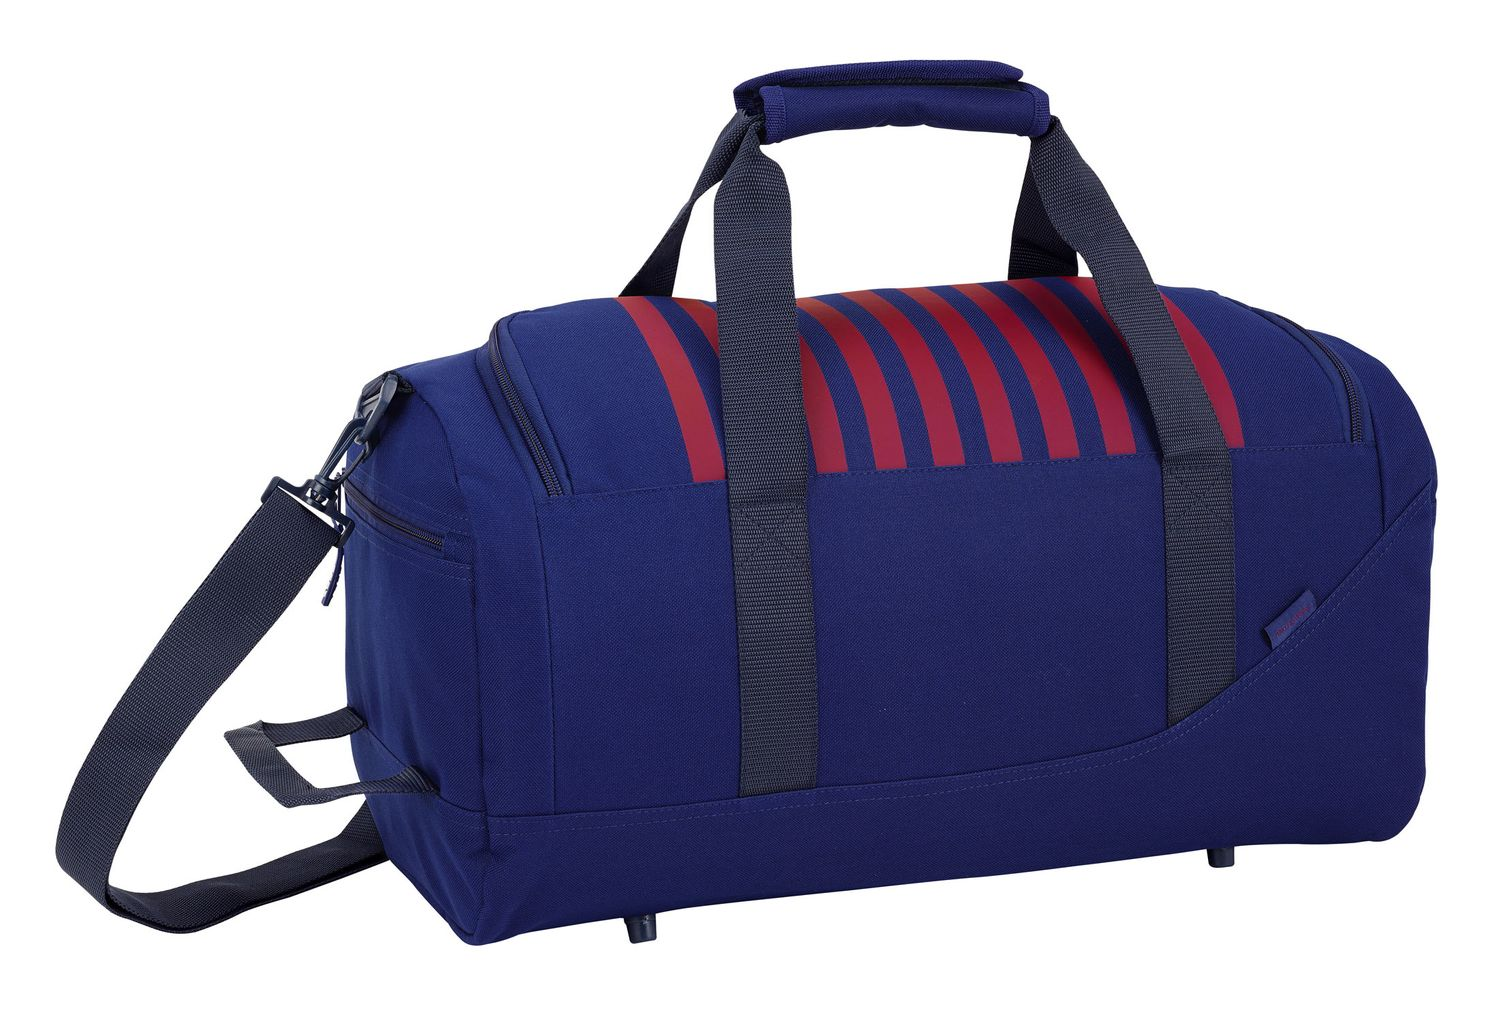 FC Barcelona Sports Bag – image 2